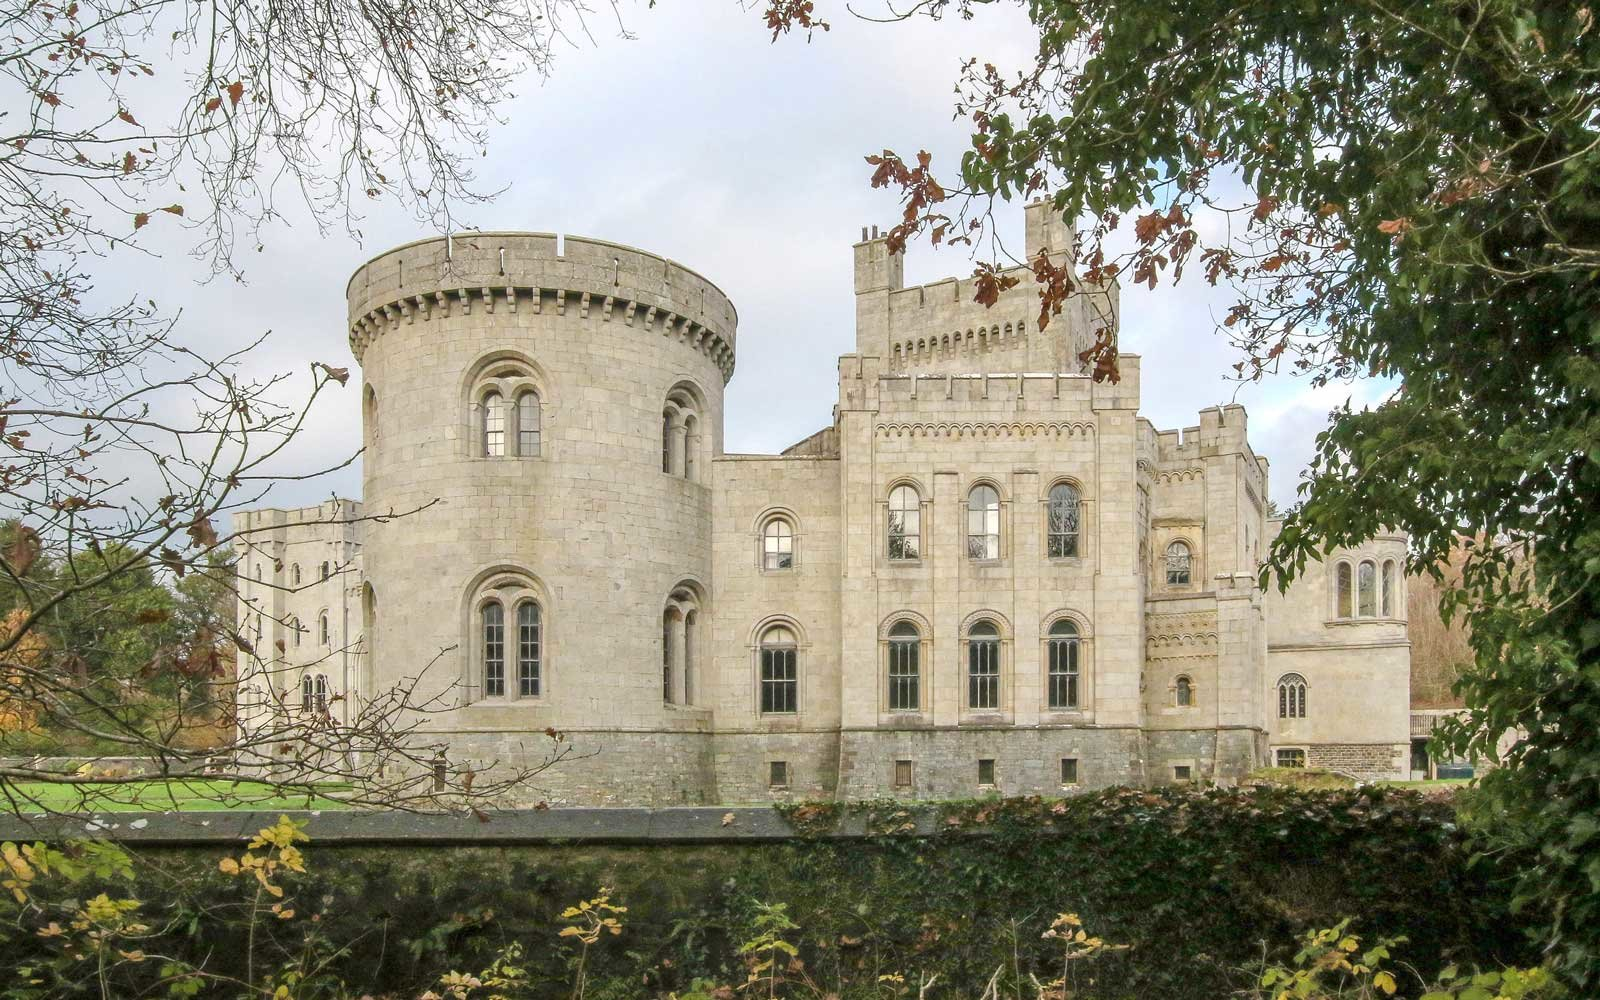 External view of a castle in Northern Ireland, Gosford Castle, Gosford Forest Park, County Armagh.